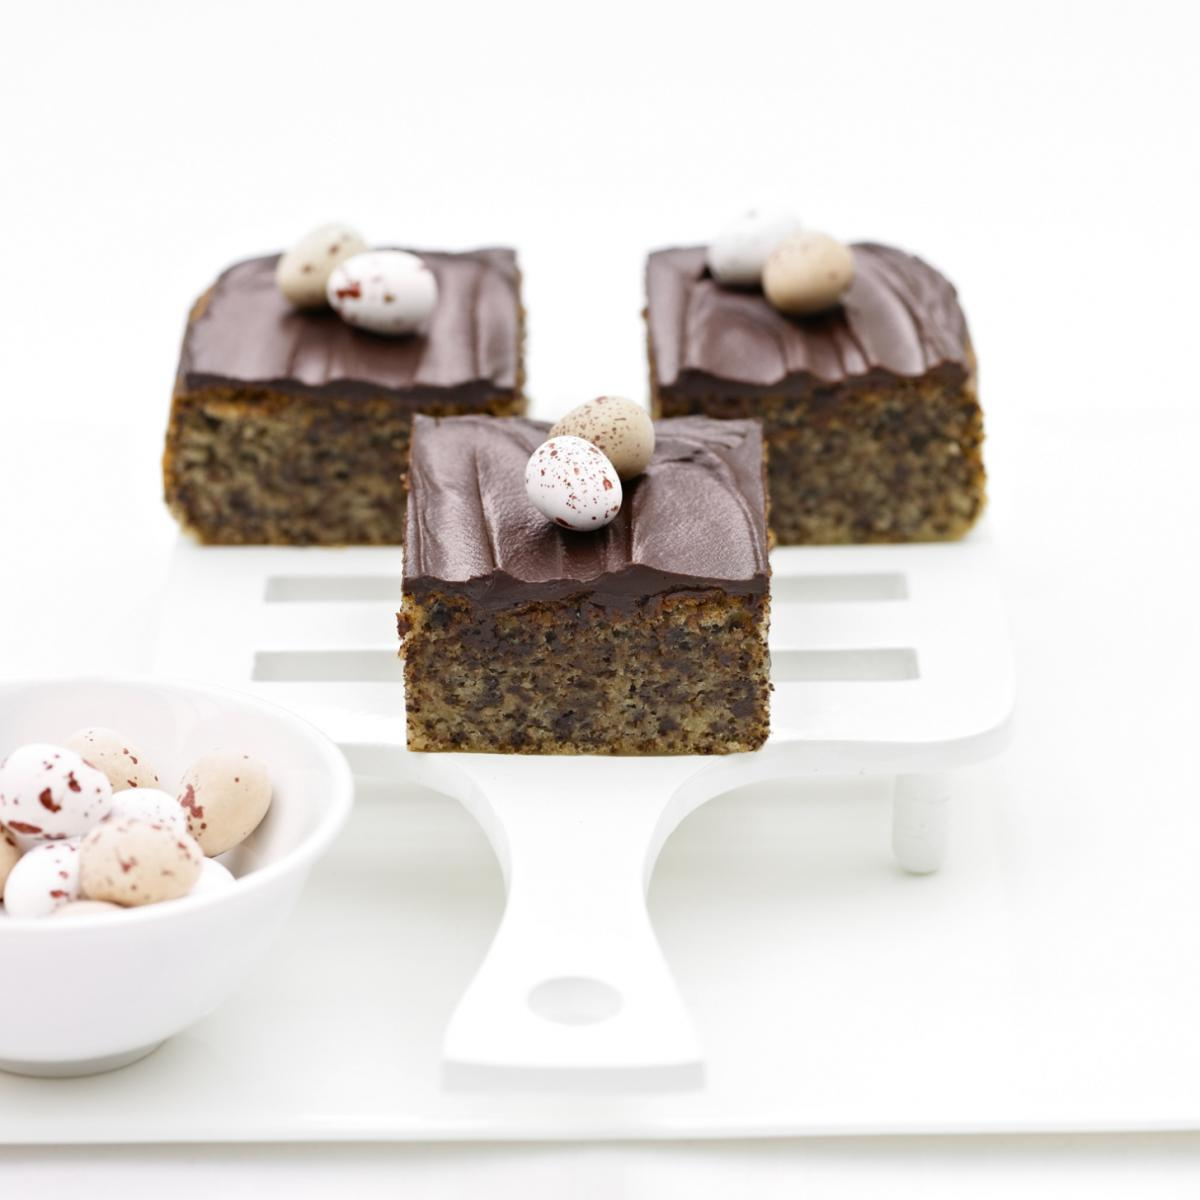 Cakes moist chocolate and rum squares